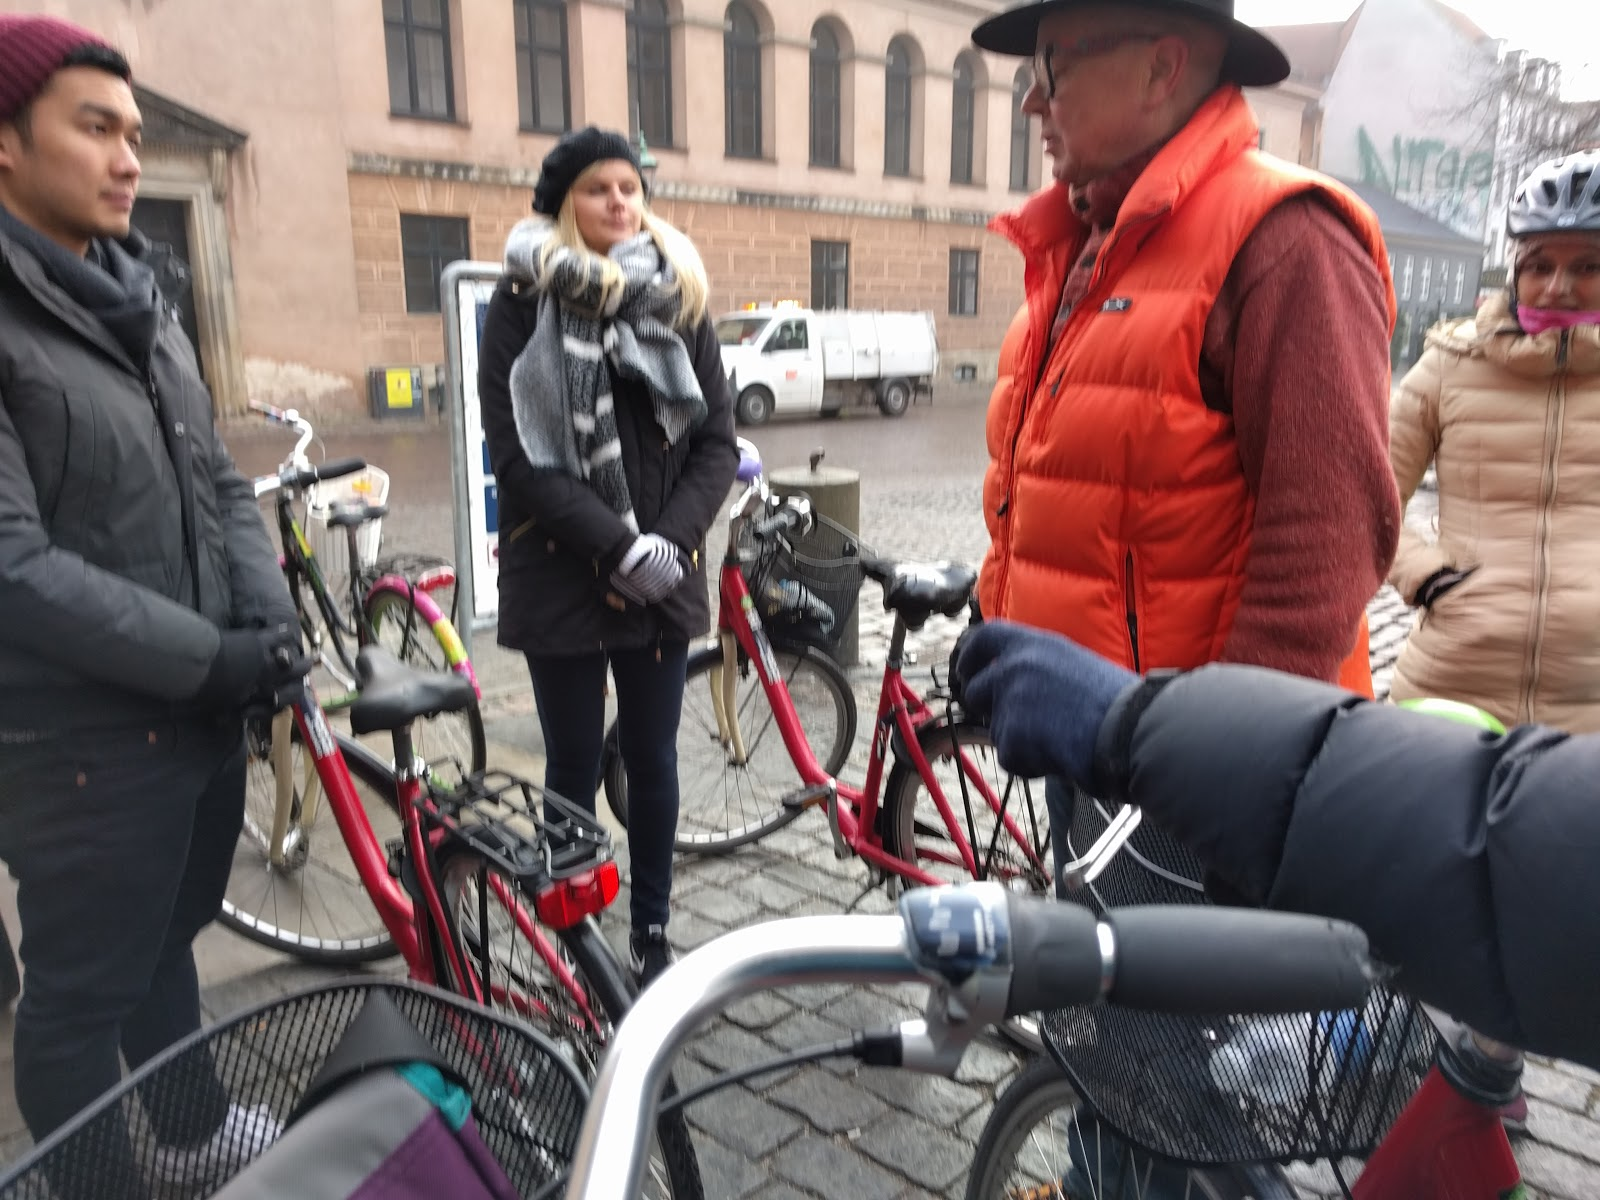 Copenhagen Day 4 With Bike Mike And The Fog Ellen Says Hola